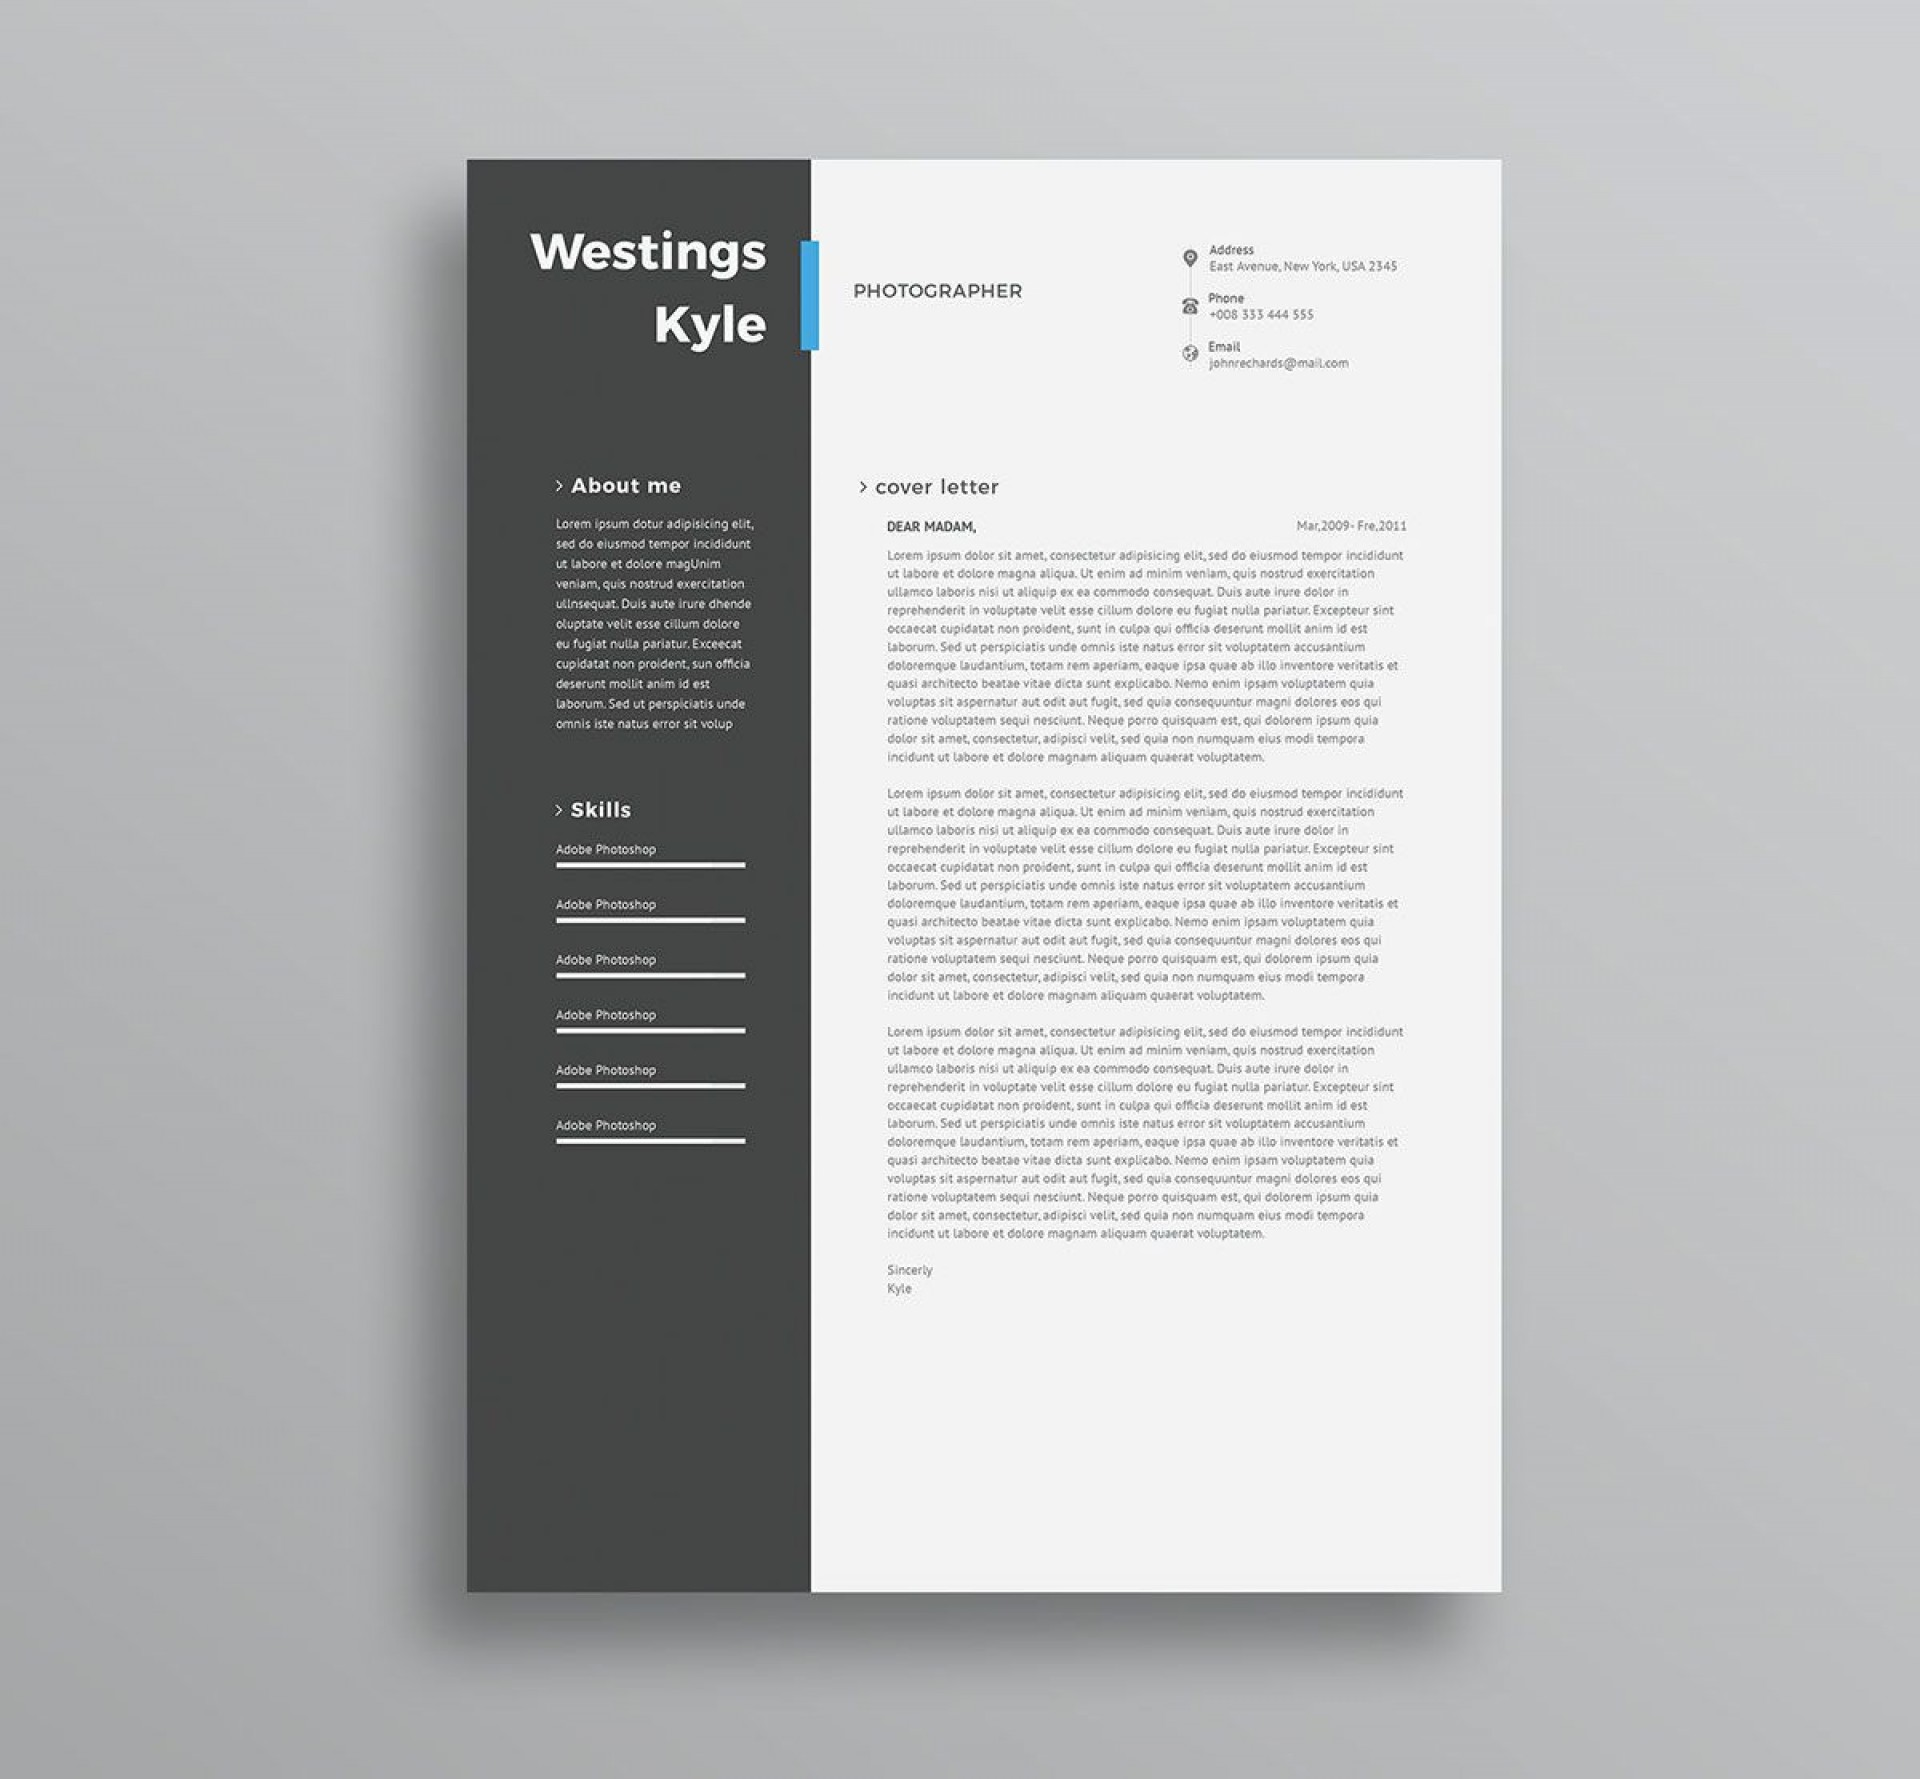 004 Amazing Professional Resume Template 2018 Free Download Photo 1920